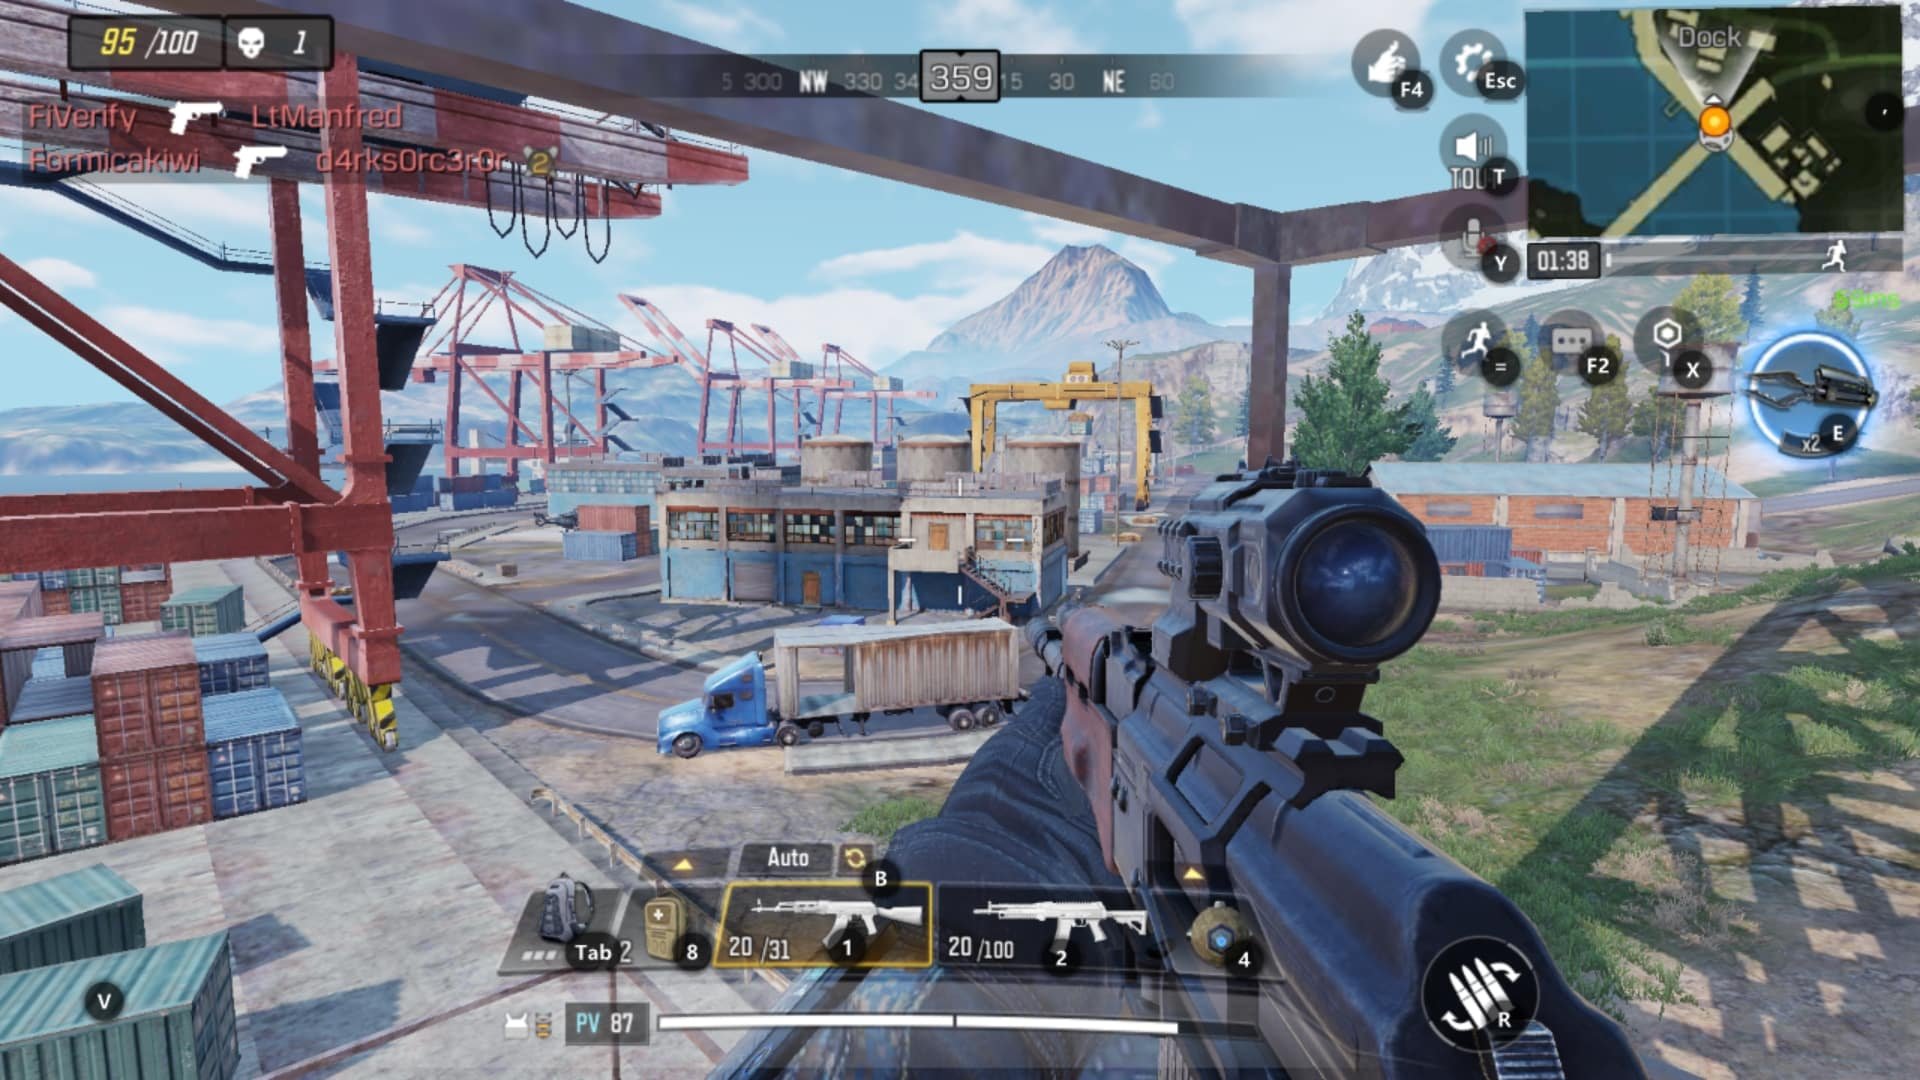 dock-ville-call-of-duty-mobile-carte-saison-1-isolated